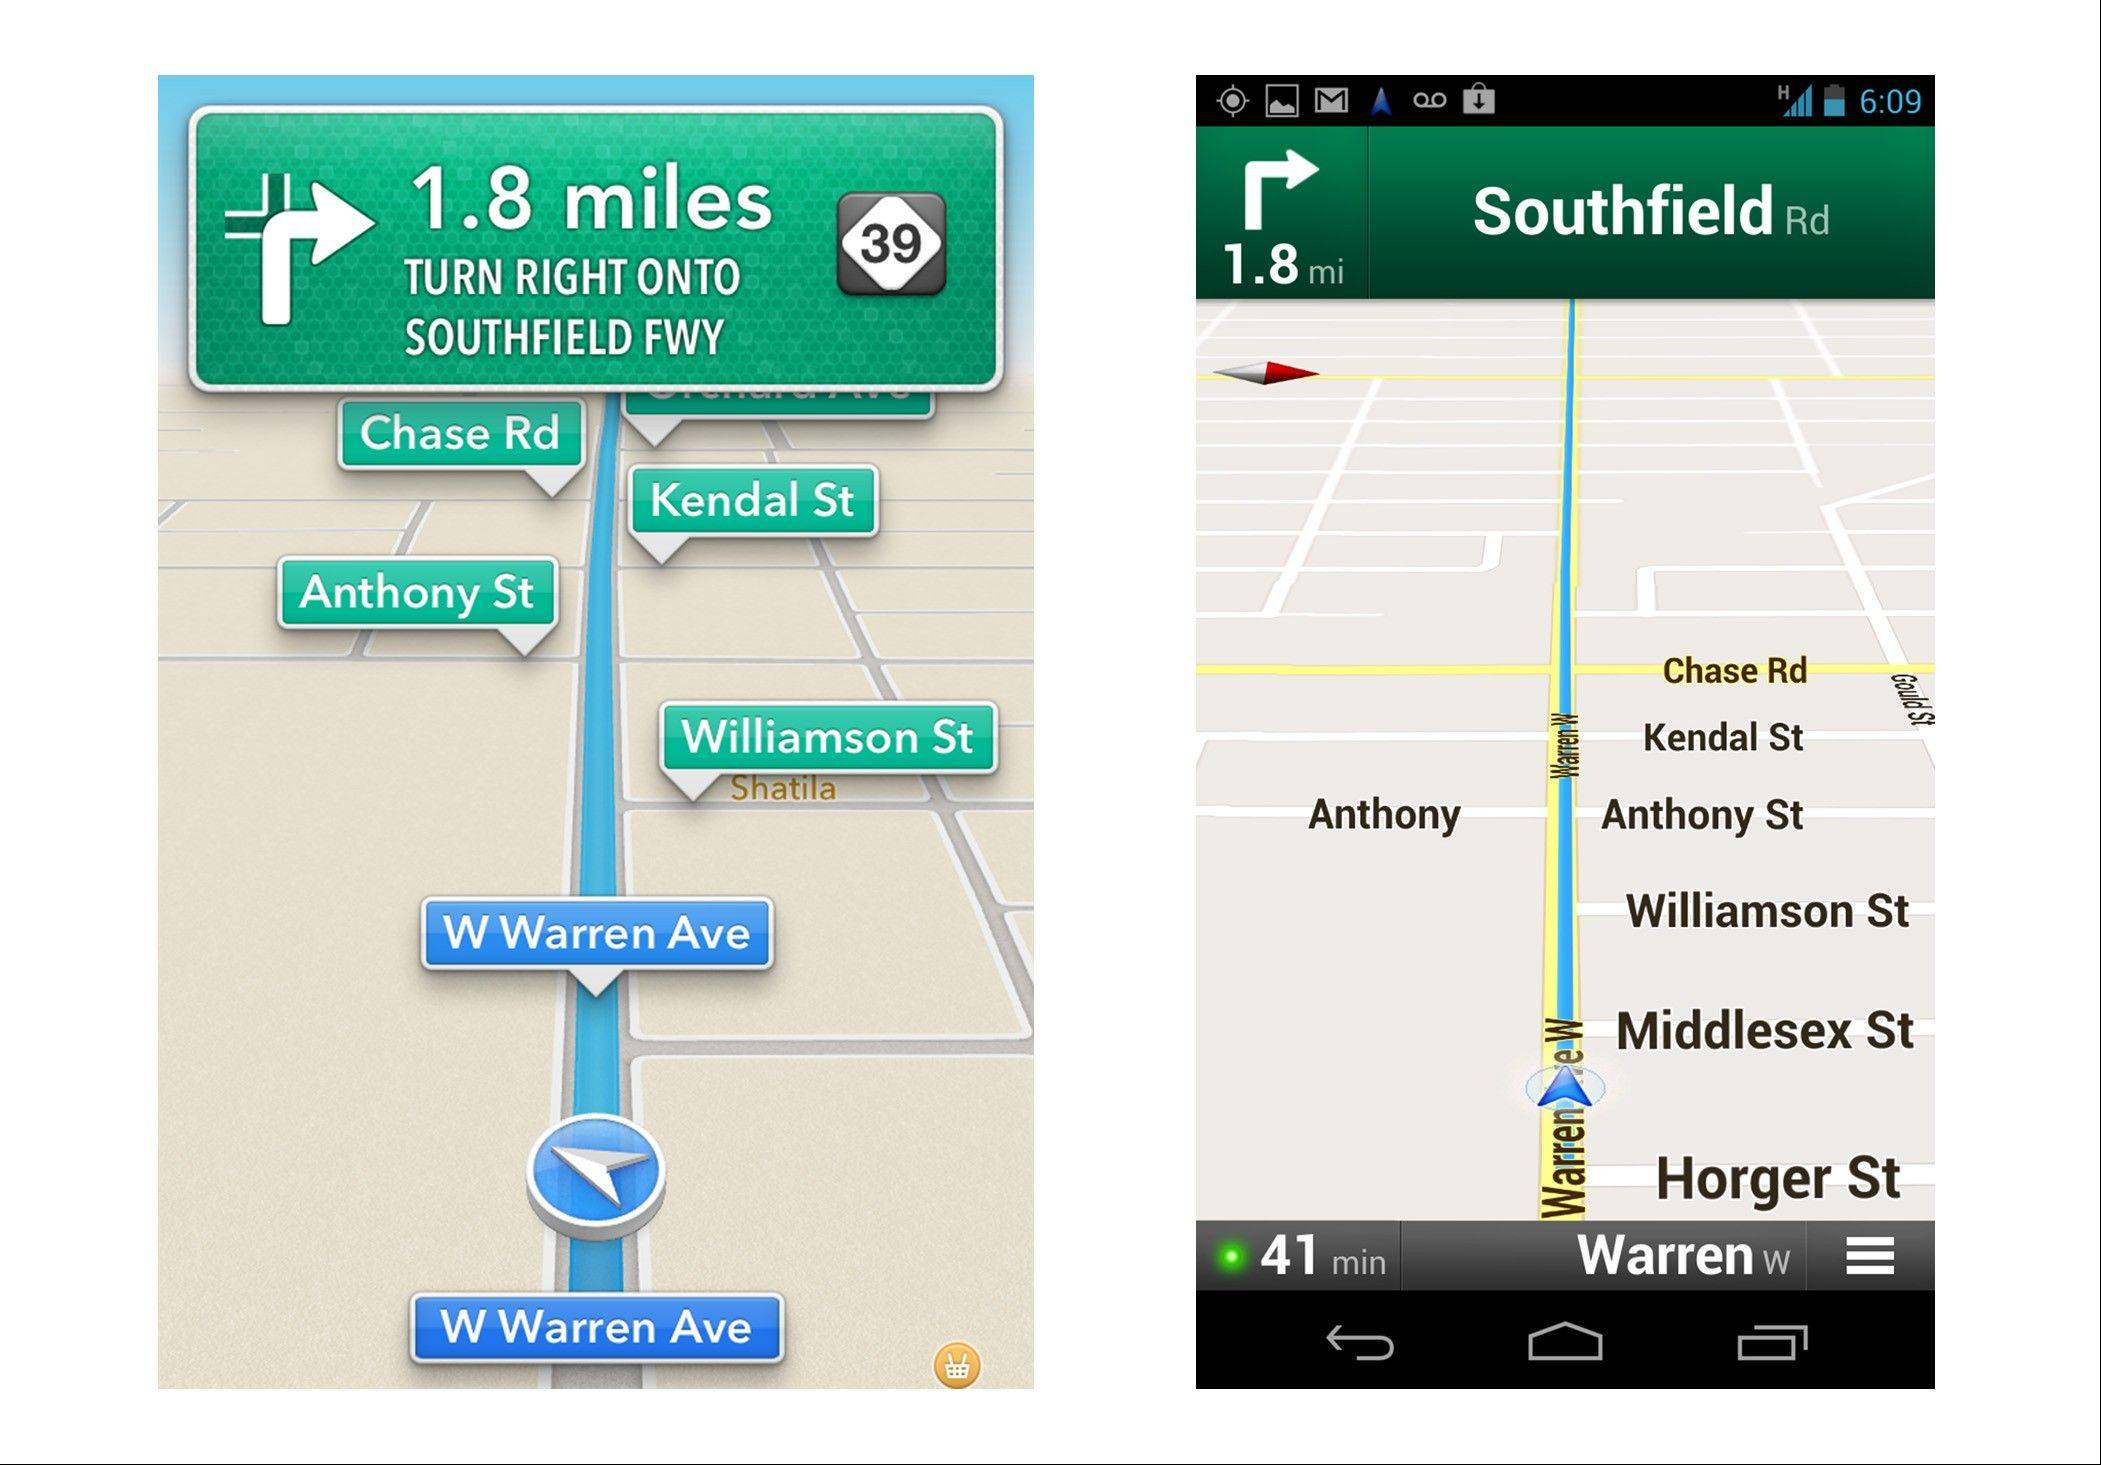 These screenshots show Apple's maps app on an iPhone, left, and Google's on an Android device during a drive in Dearborn, Mich. Both have voices guiding motorists to upcoming turns, in this case onto Southfield Road in about two miles. An AP review finds the Google app, on the right, having more features, though Apple's app does a good job for the most part getting people to their destination.